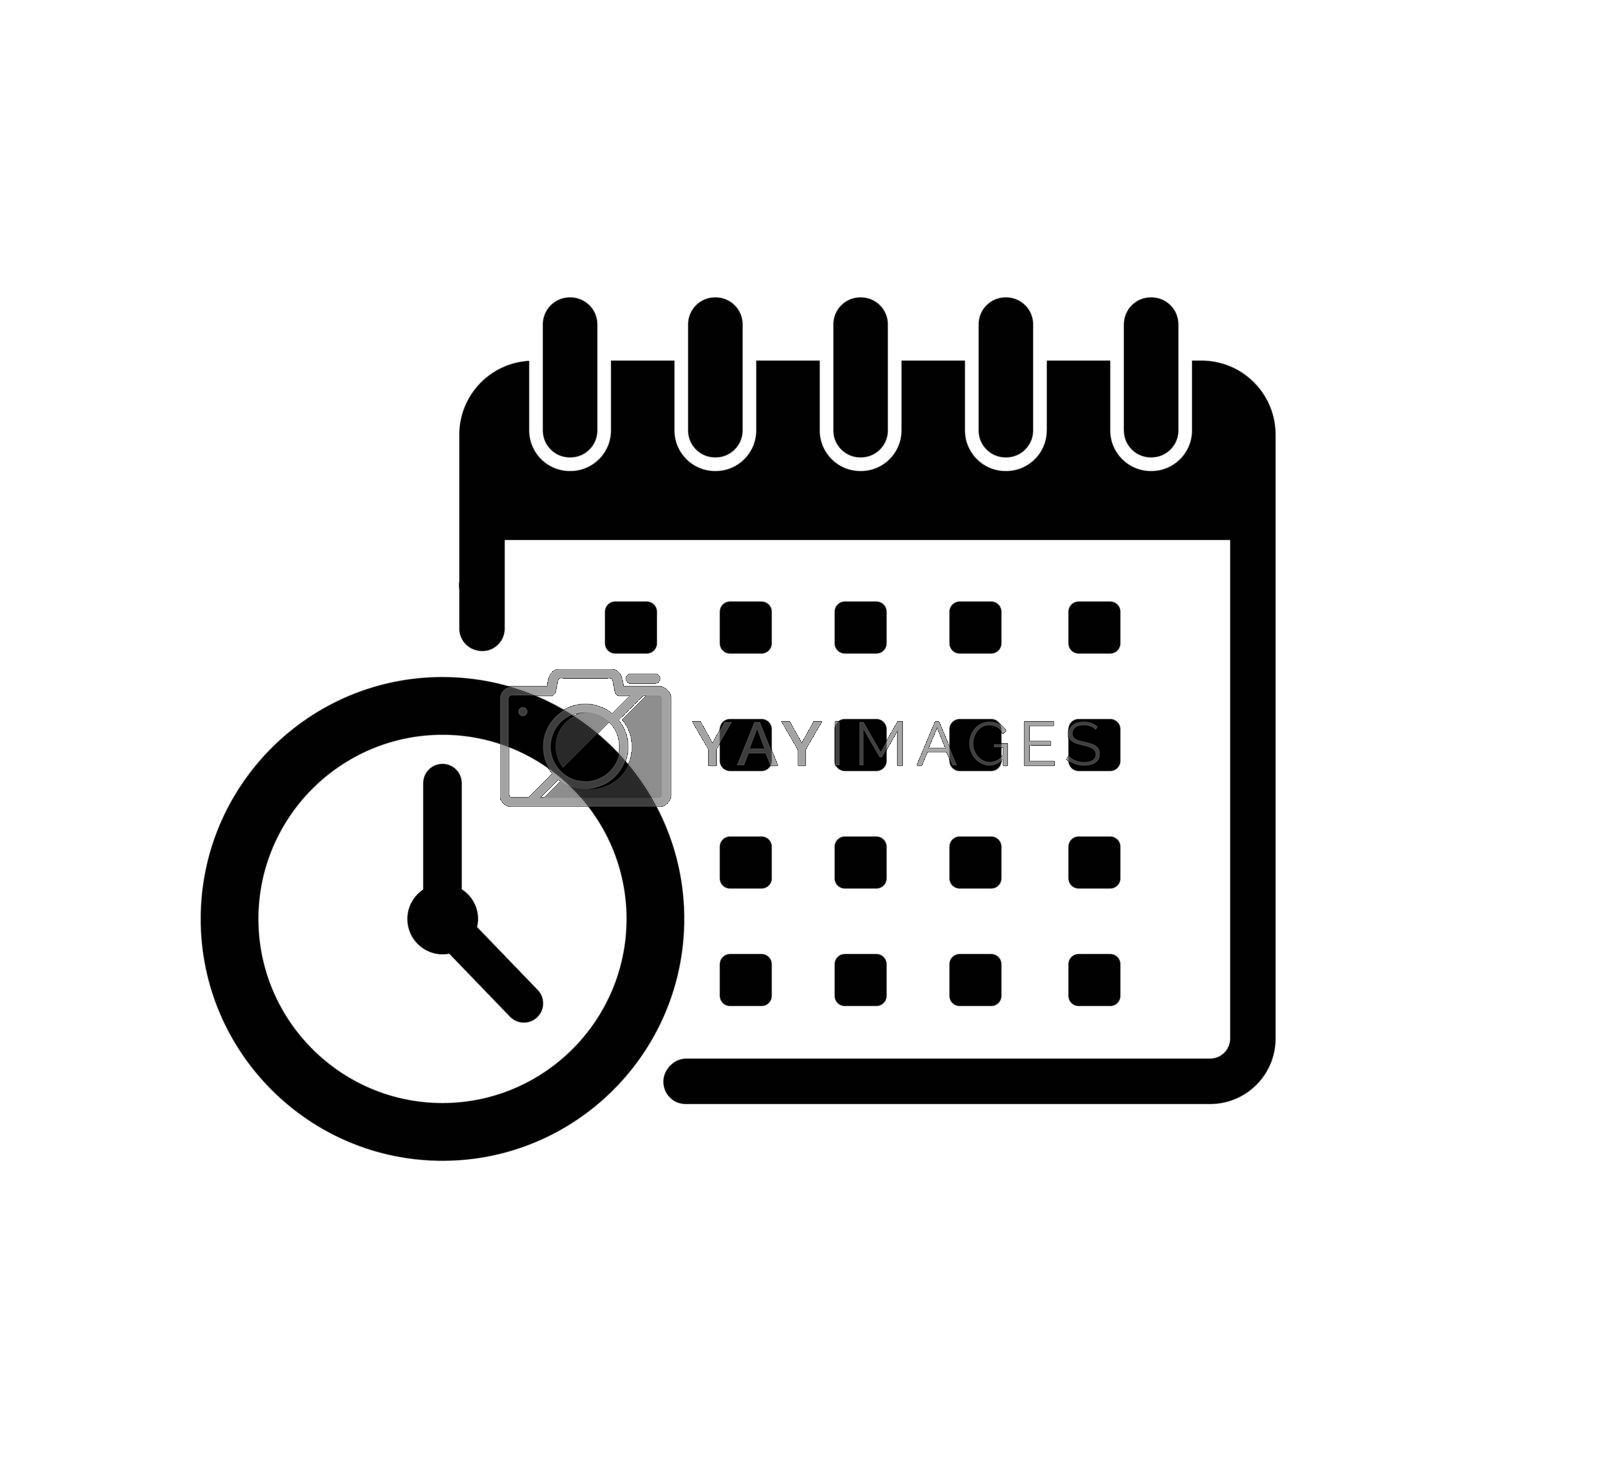 Royalty free image of Schedule, task management vector icon illustration by barks